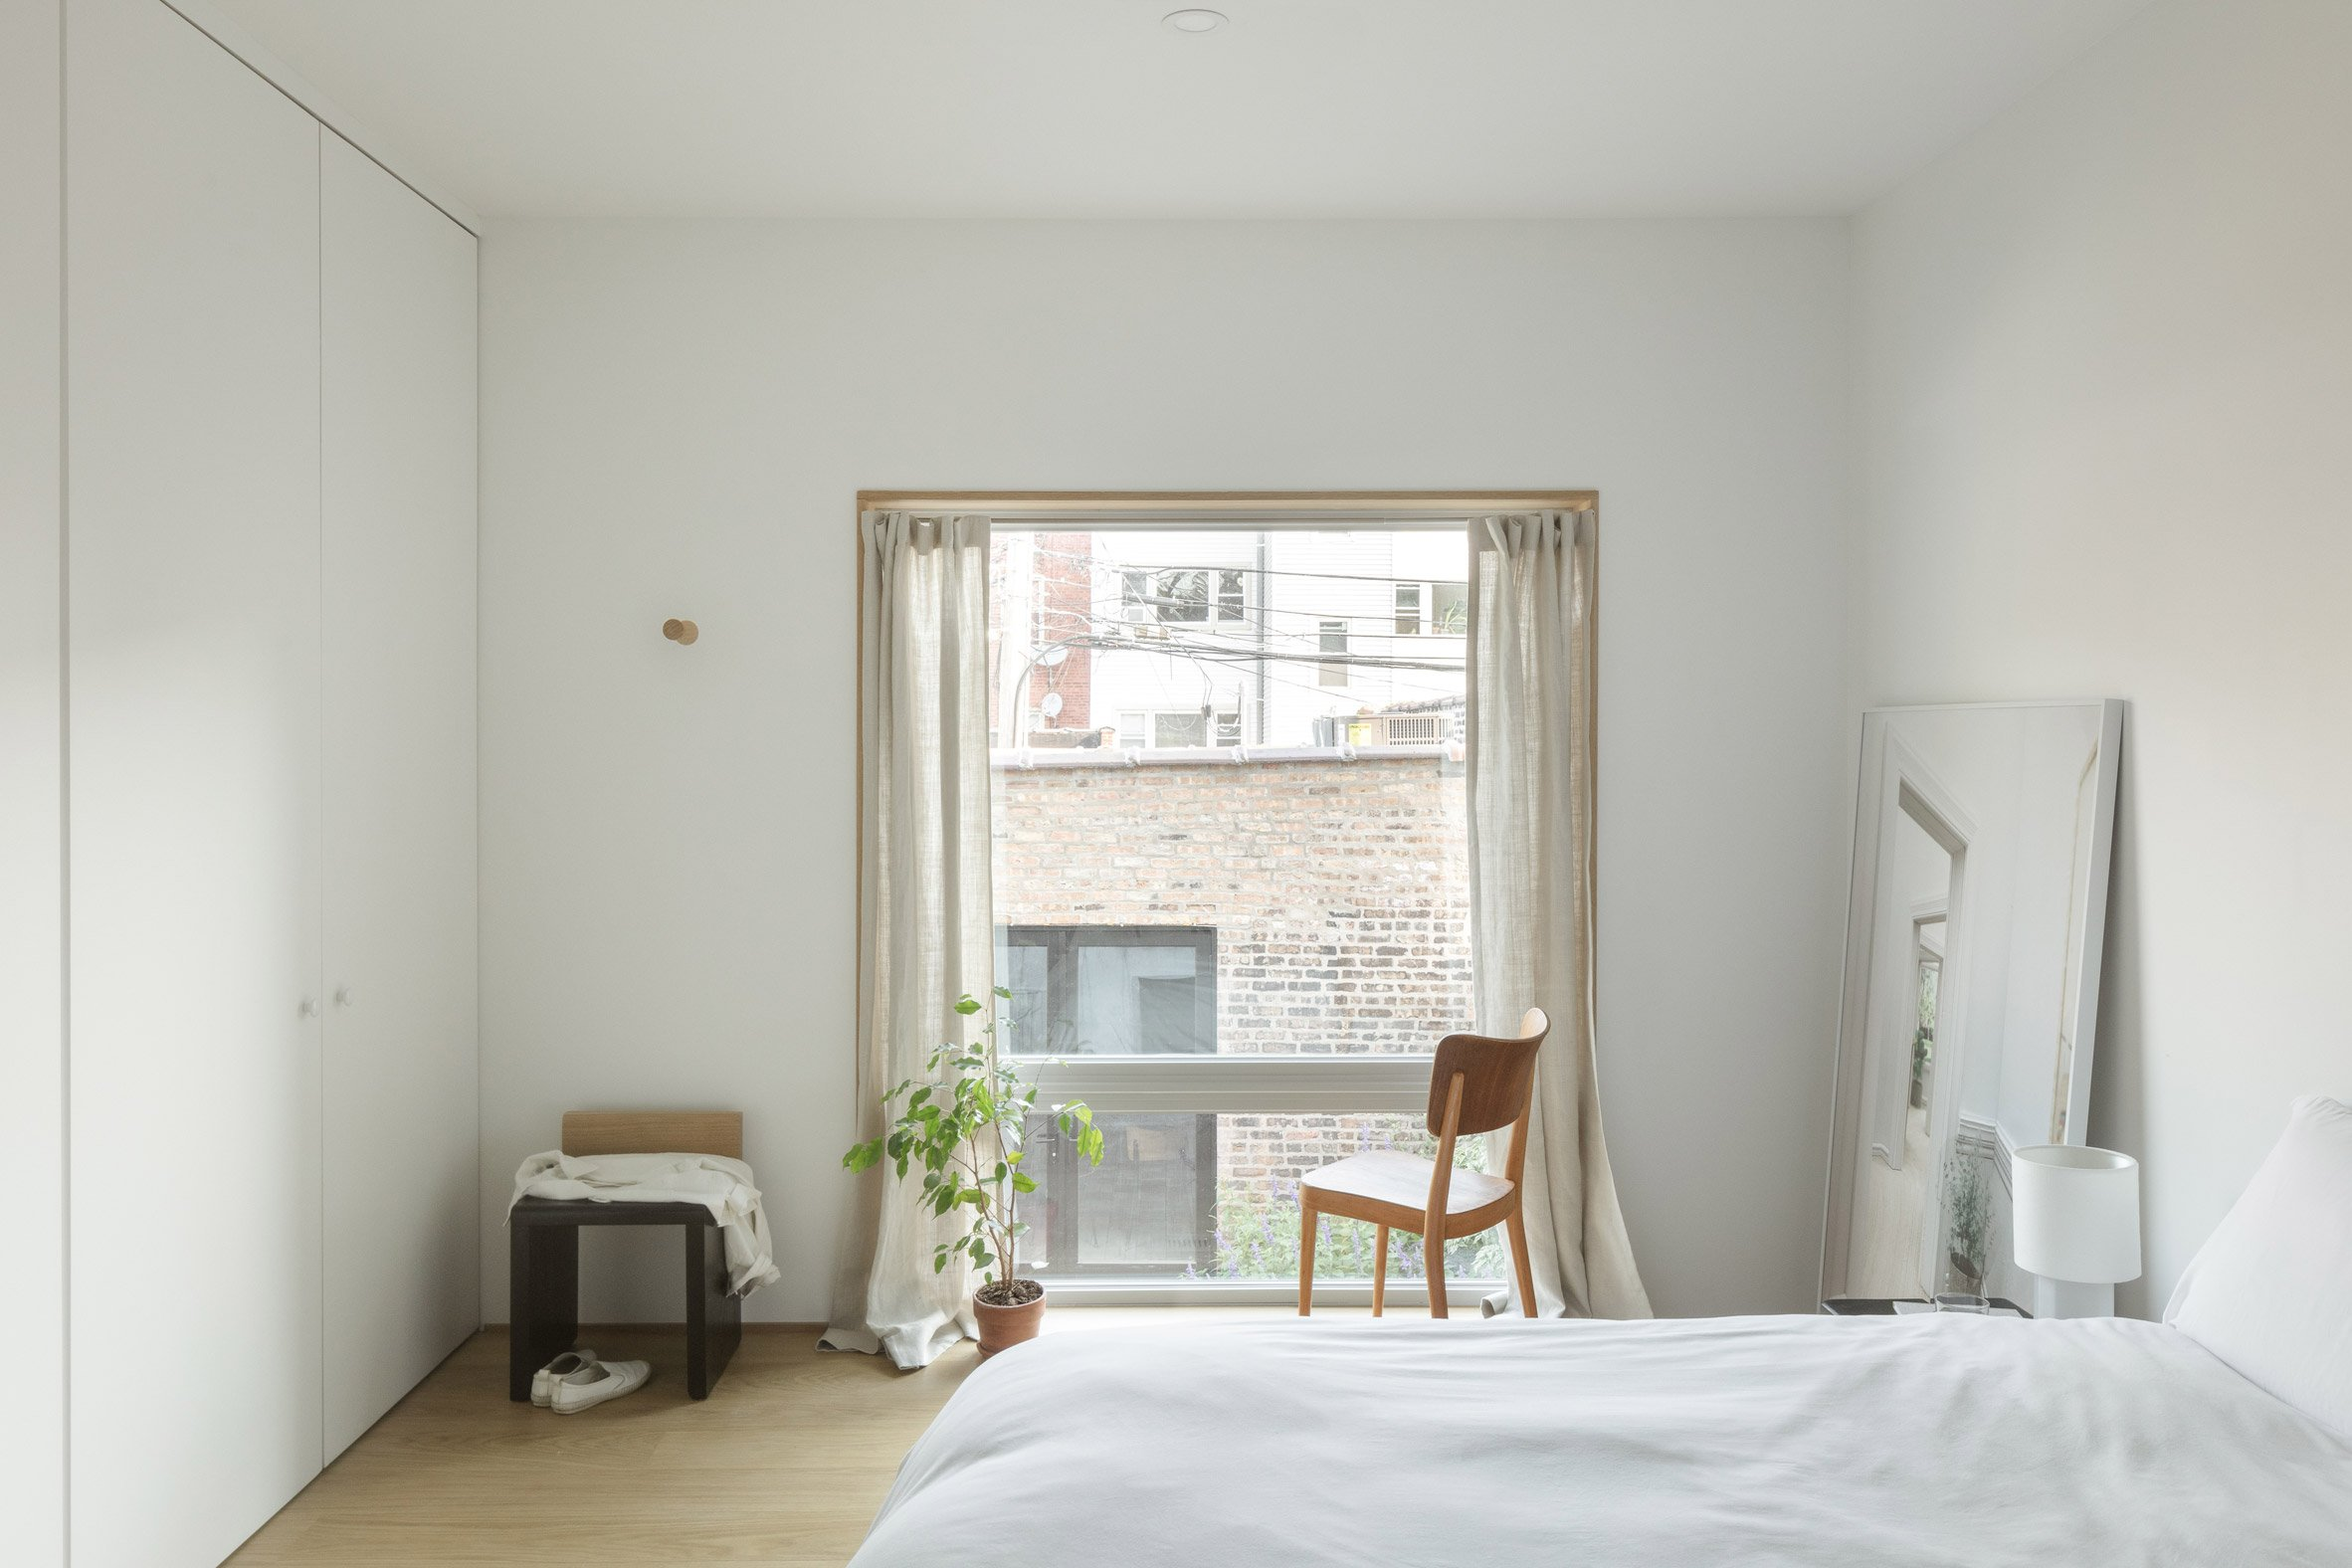 Bedroom in Ardmore House by Kwong Von Glinow